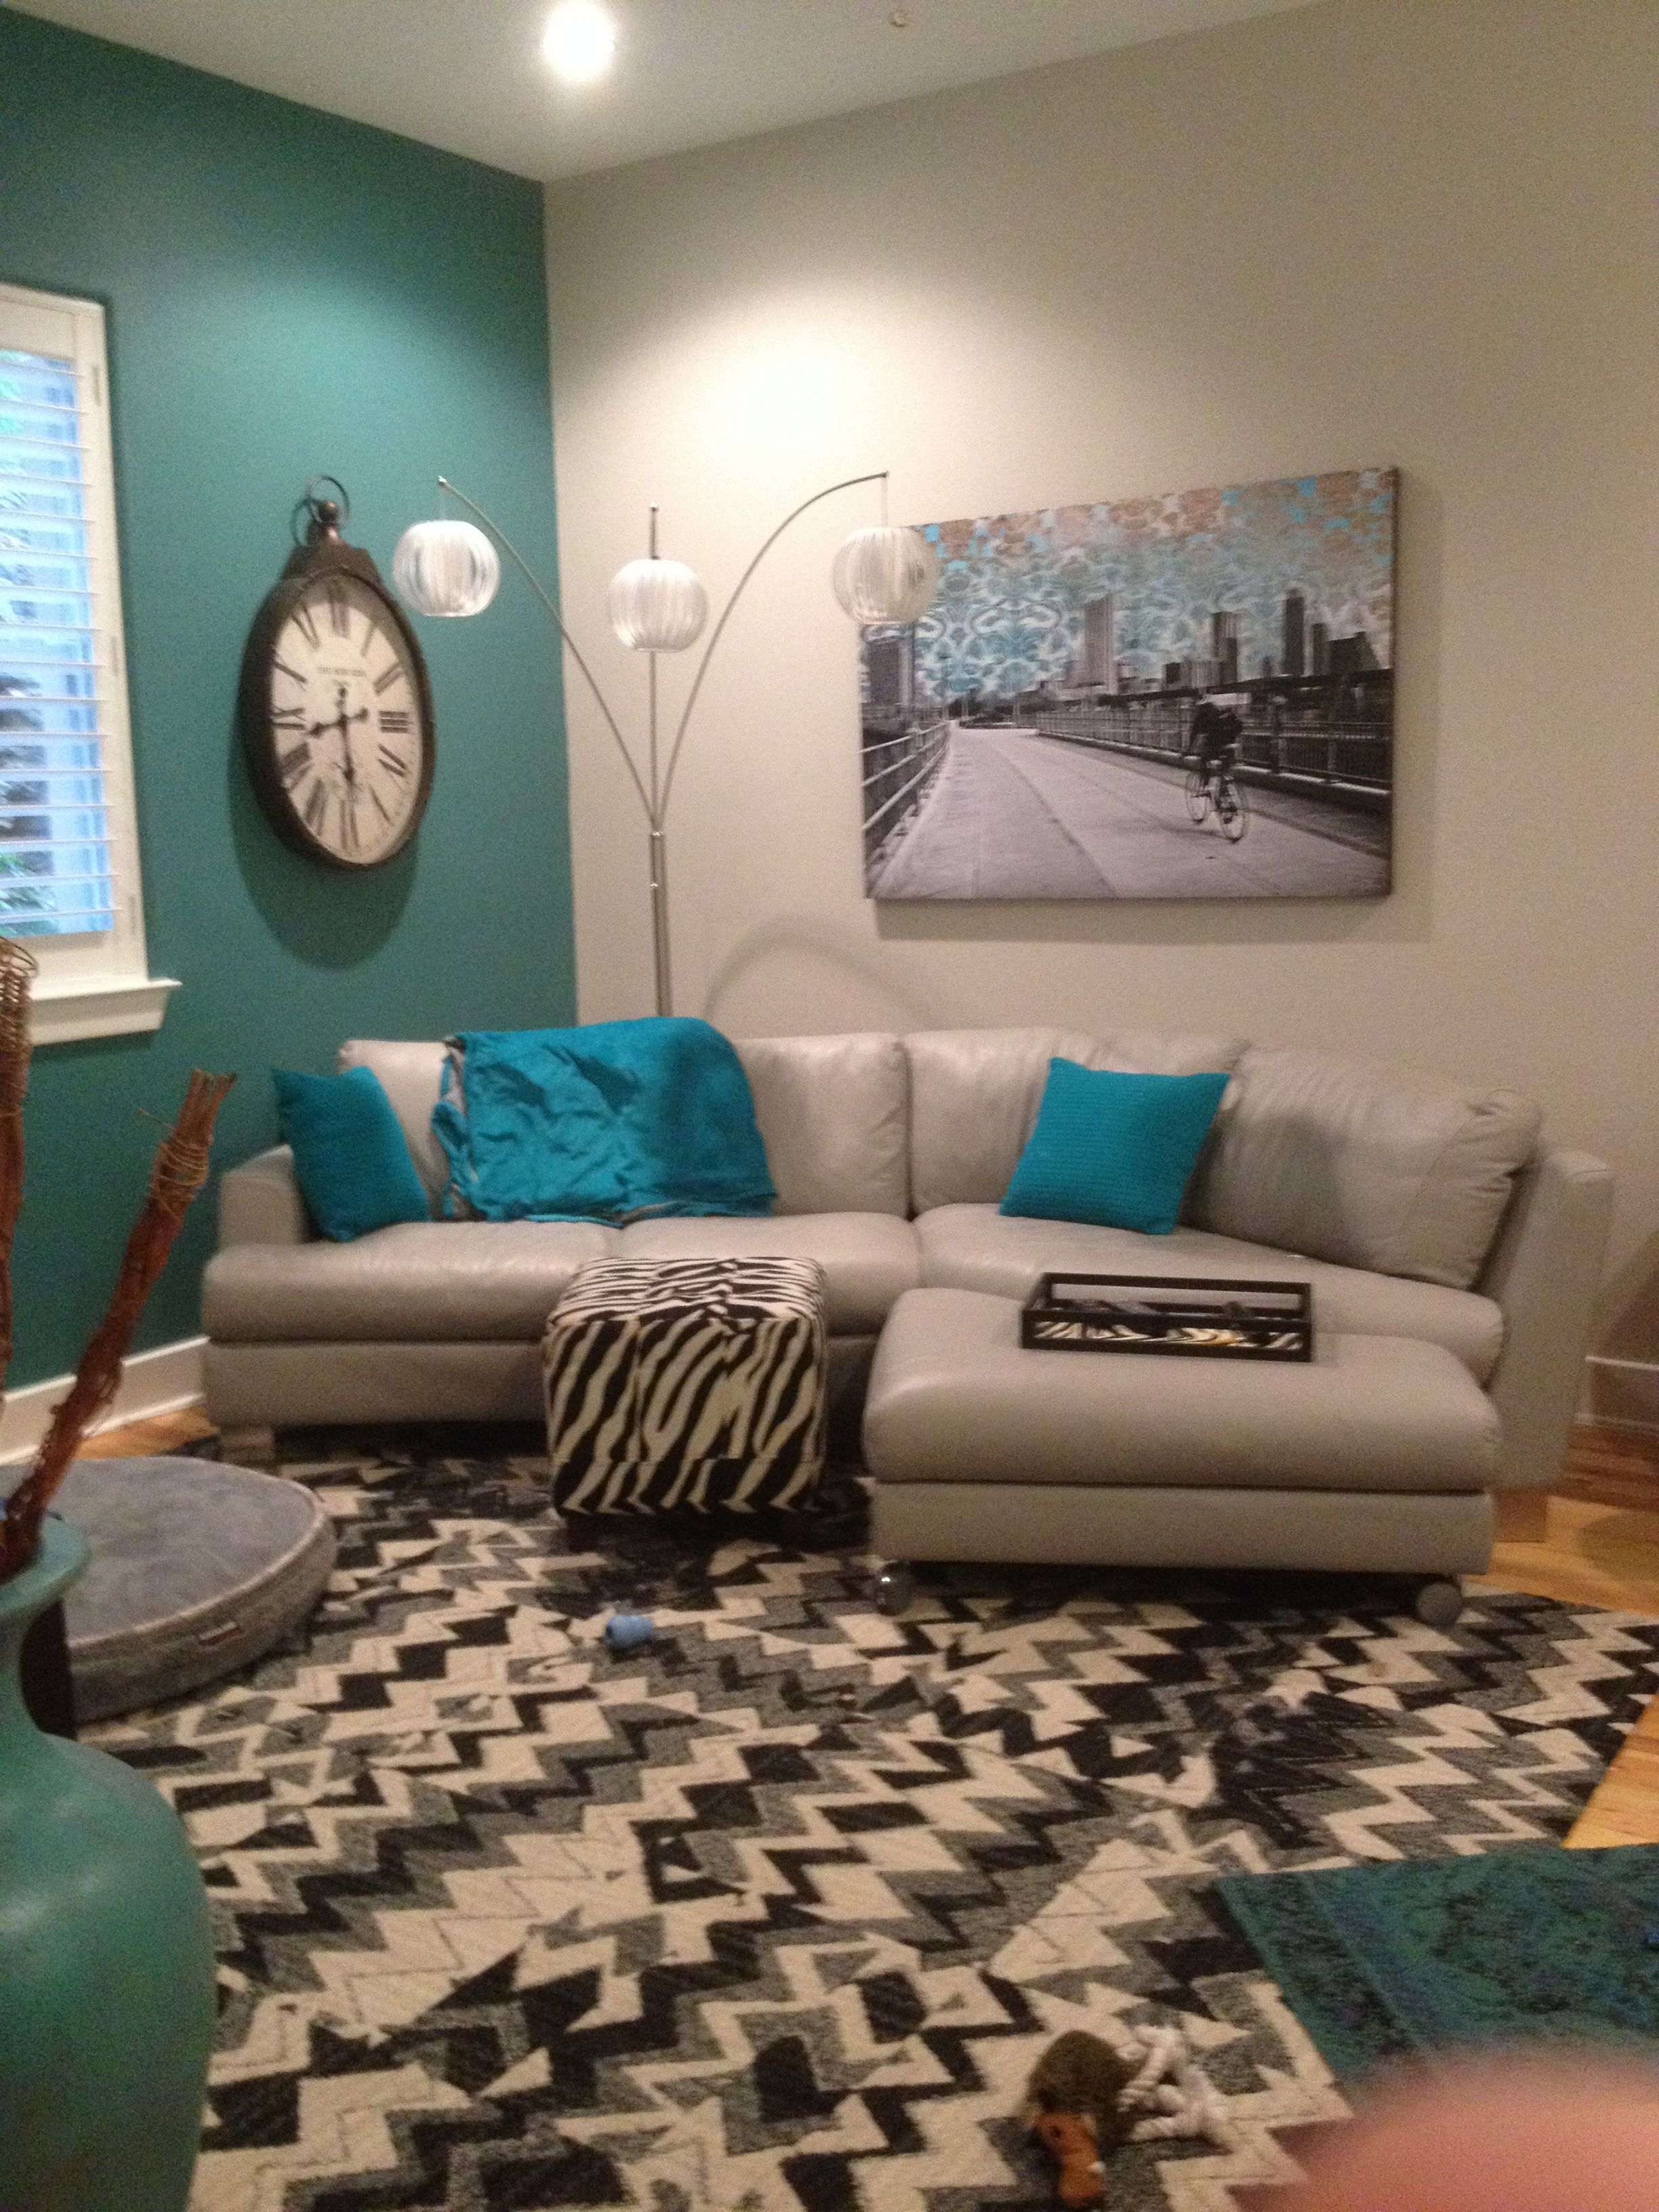 Turquoise Accent Wall For The Home Pinterest Turquoise Accent Walls Turquoise Accents